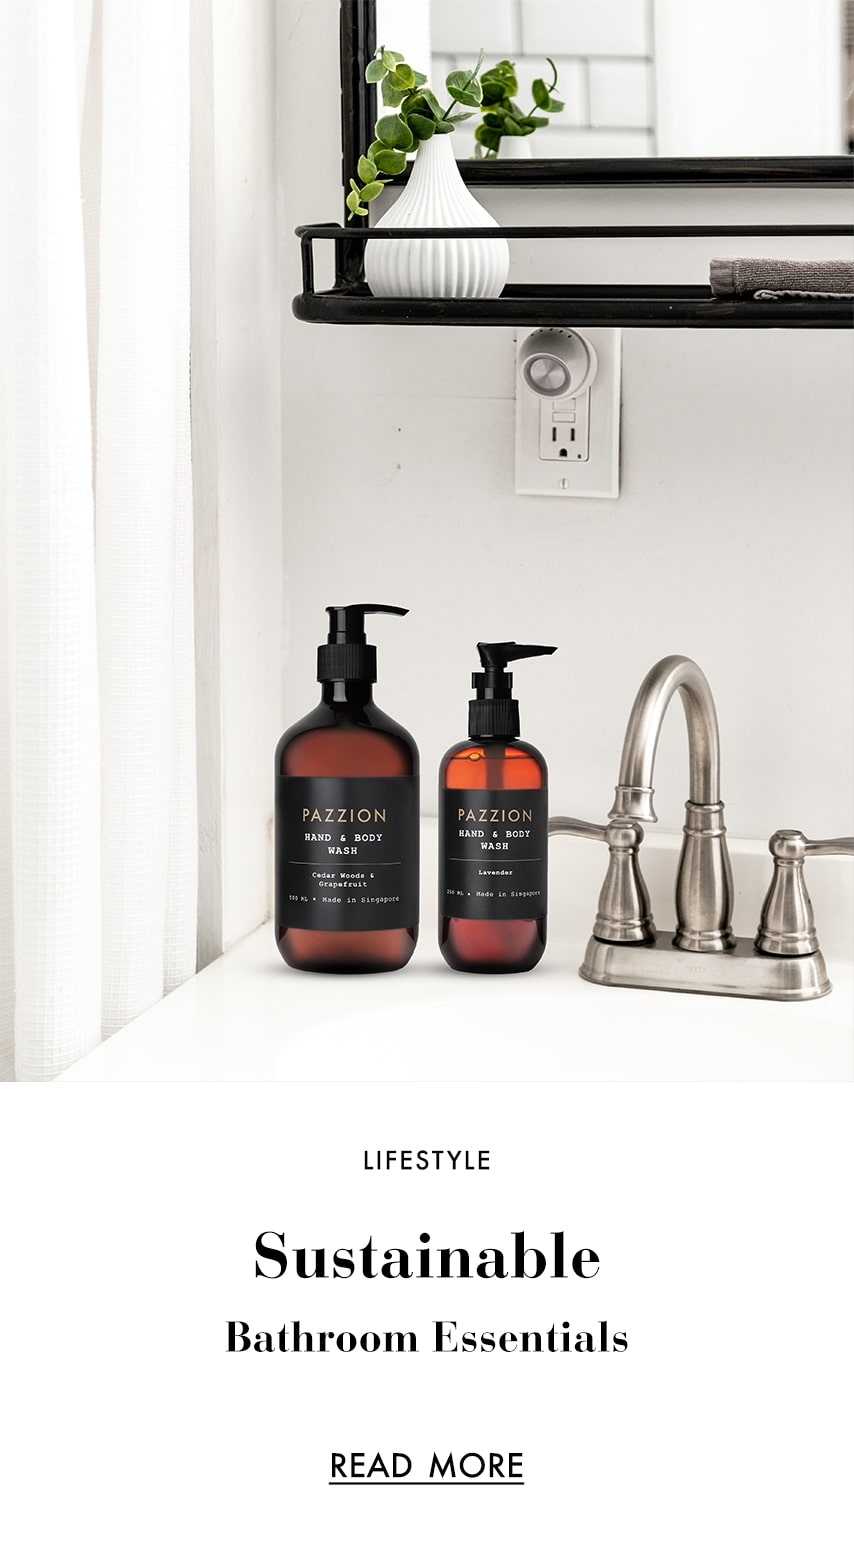 CHANGING UP YOUR LIFESTYLE WITH SUSTAINABLE BATHROOM ESSENTIALS